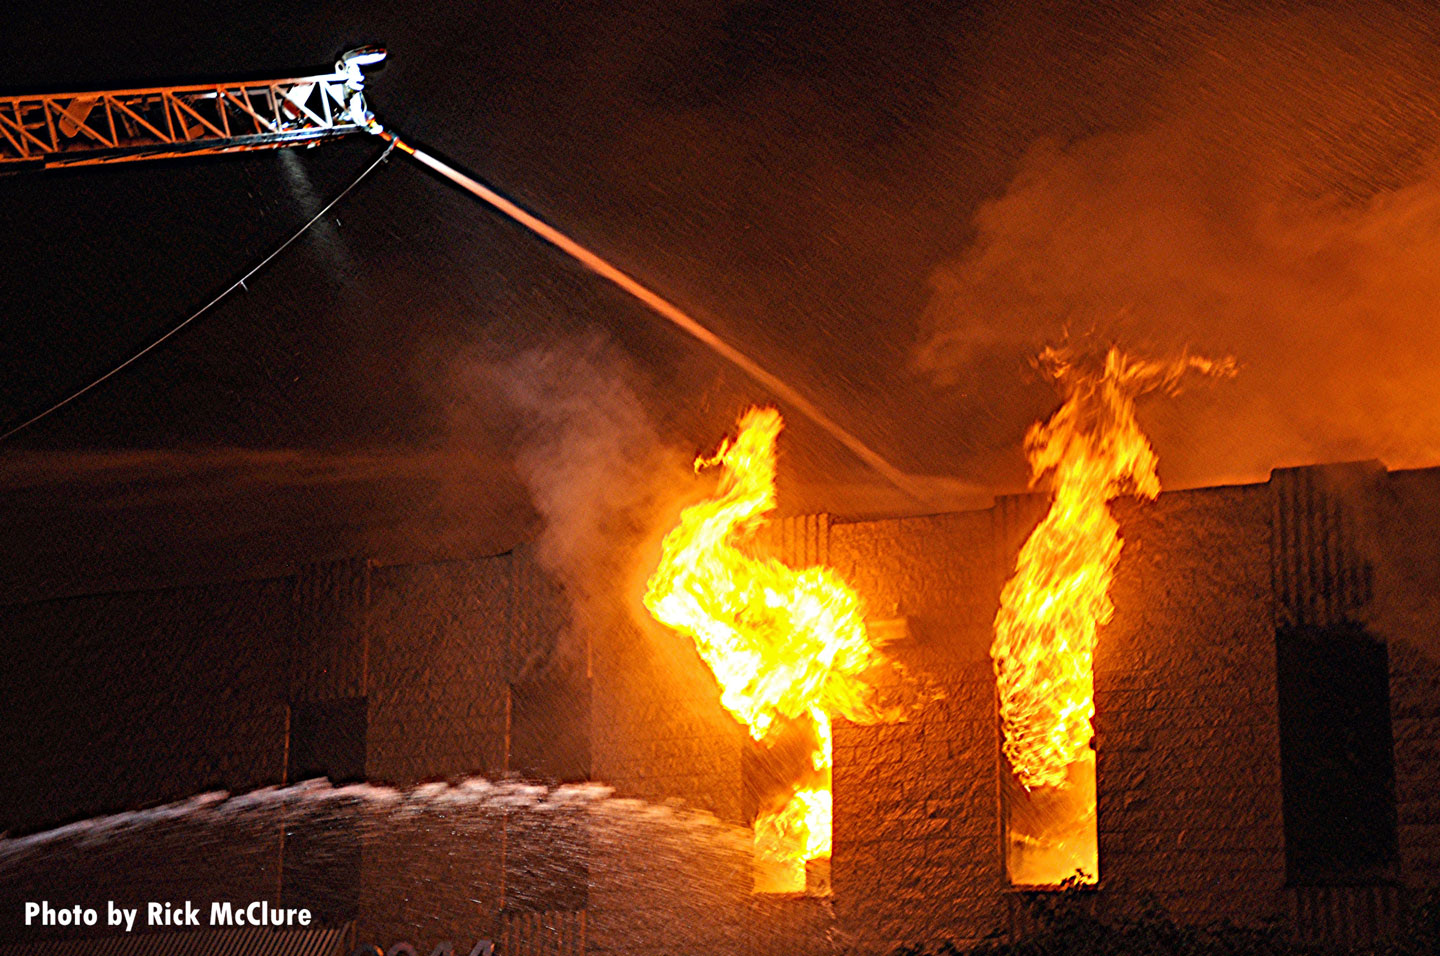 Aerial master stream administering water as fire vents from windows